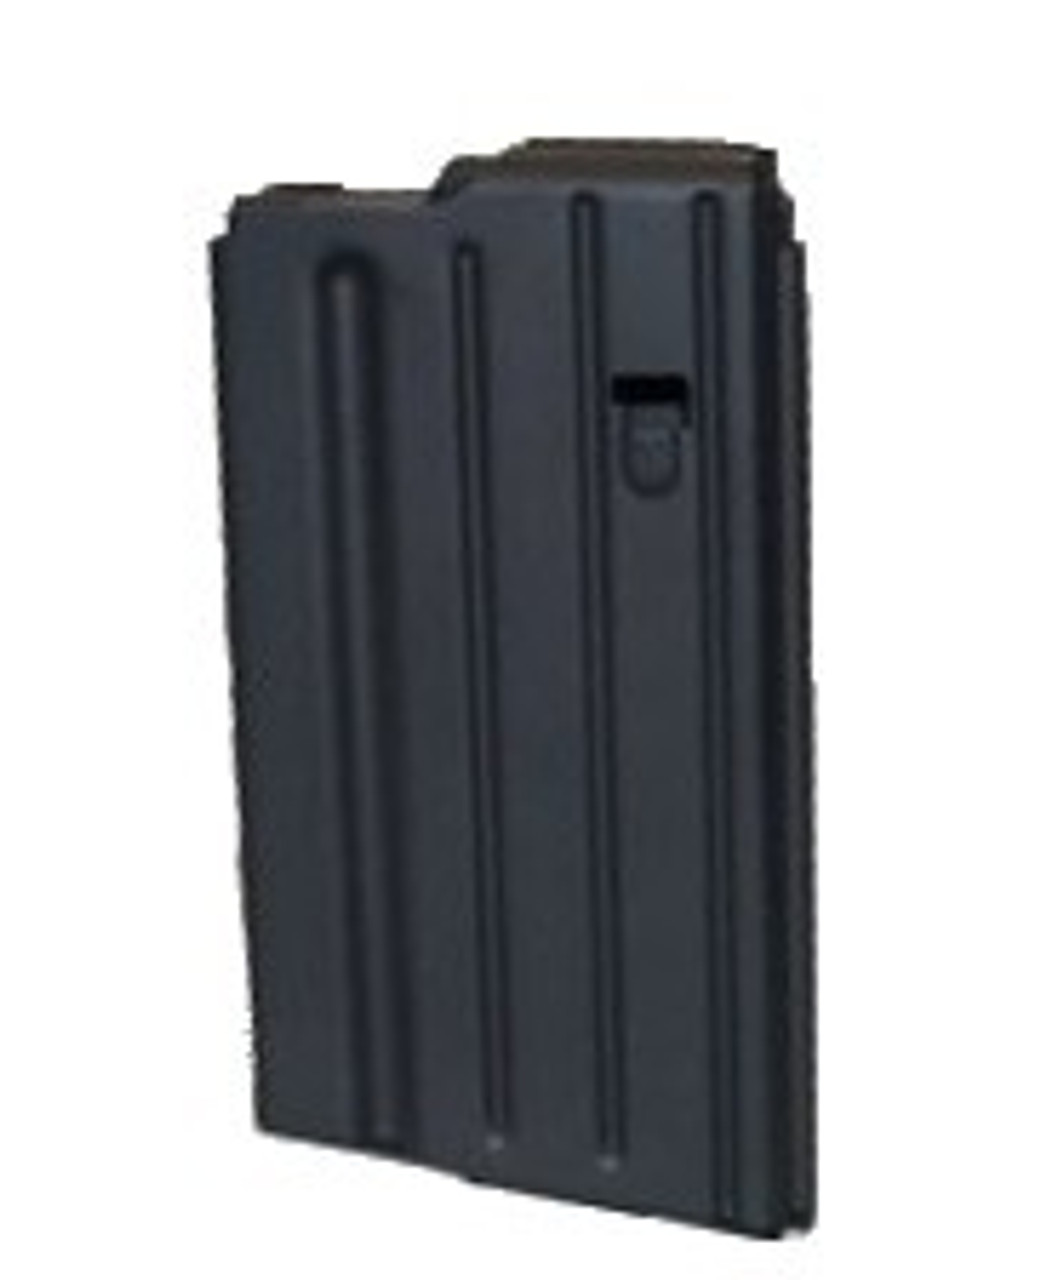 ASC AR-15 450 Bushmaster Stainless Steel Magazine *OPTIONS AVAILABLE*